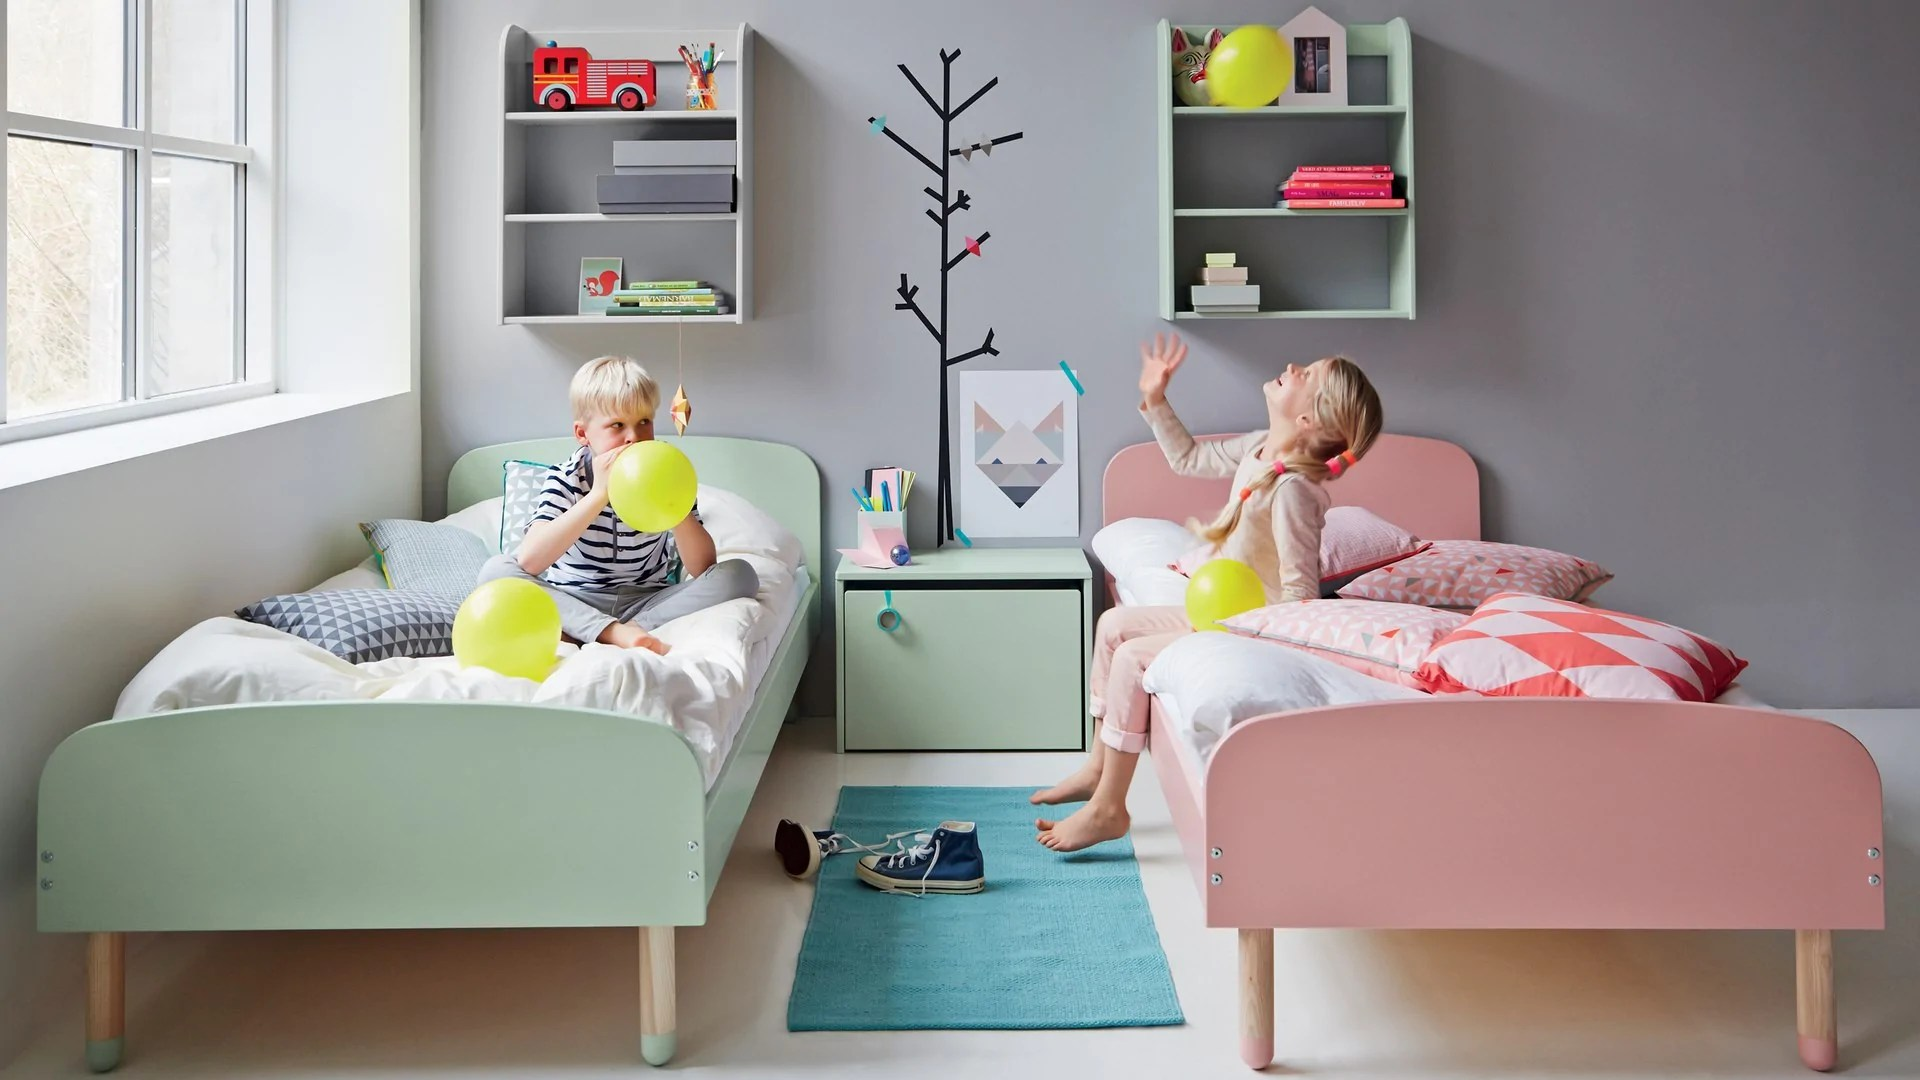 Flexa Kinderzimmer Möbel